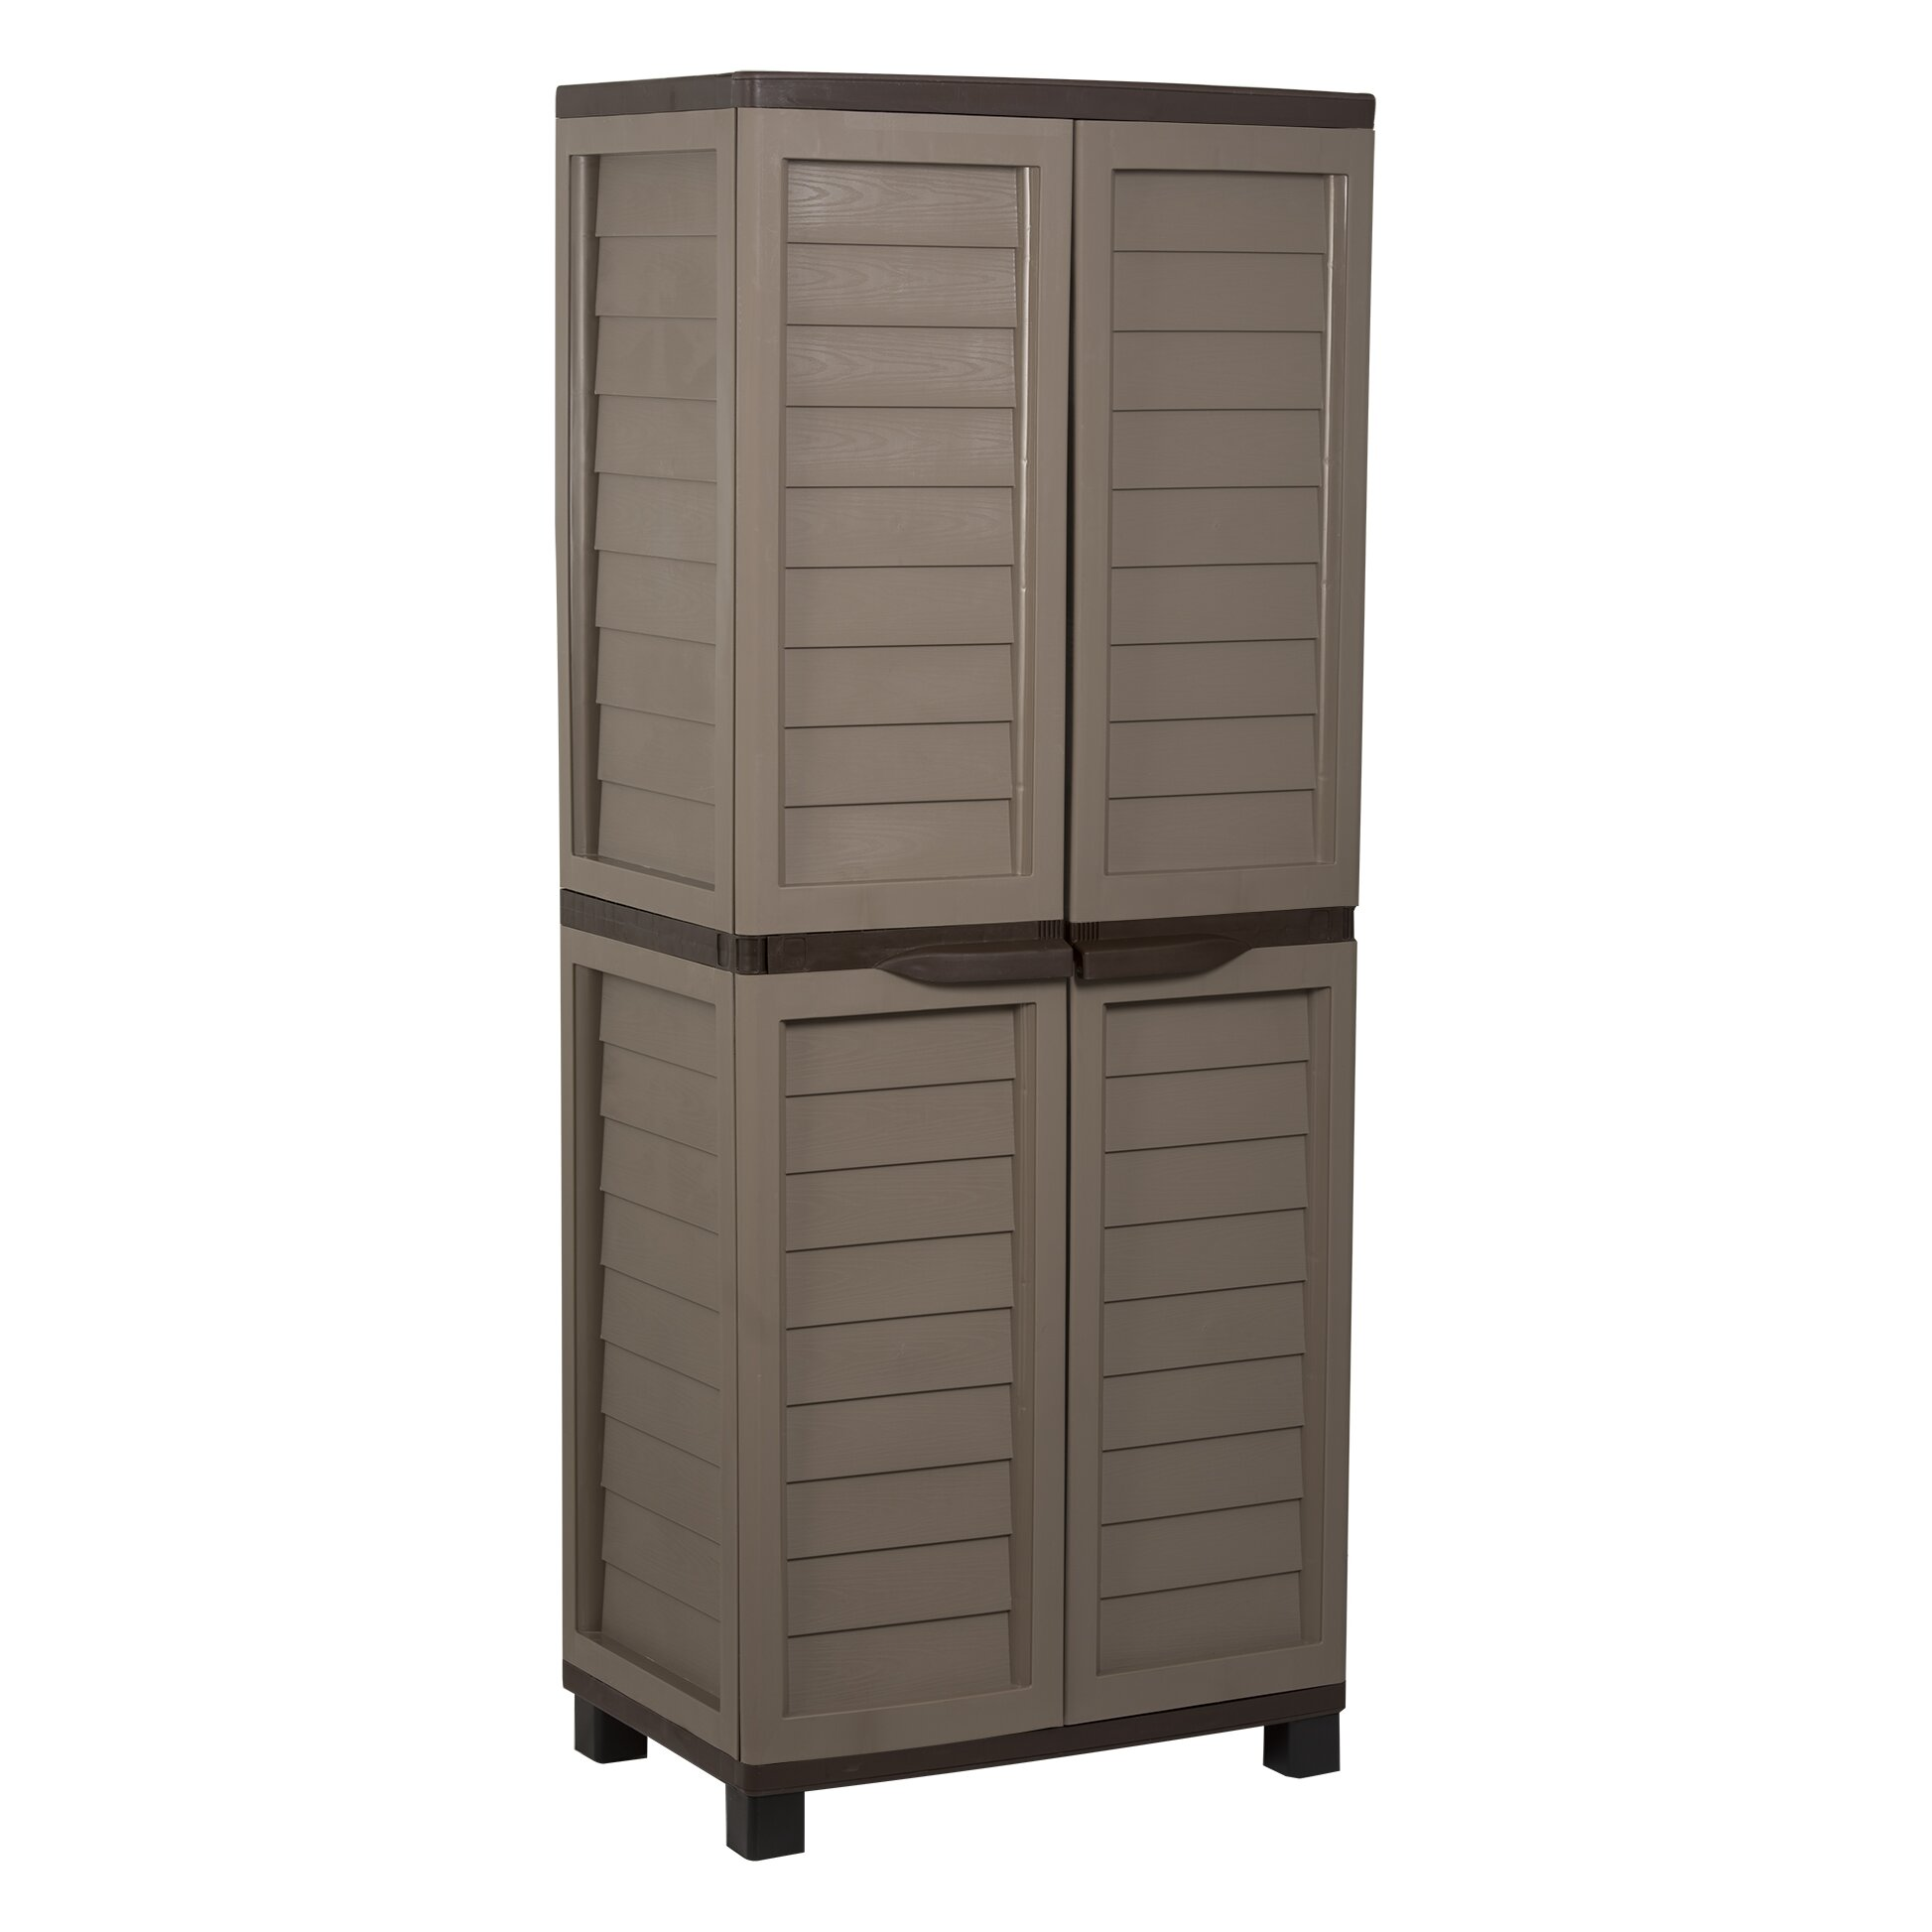 Resin Utility Cabinet Starplast 736 X 295 X 207 Storage Cabinet Reviews Wayfair